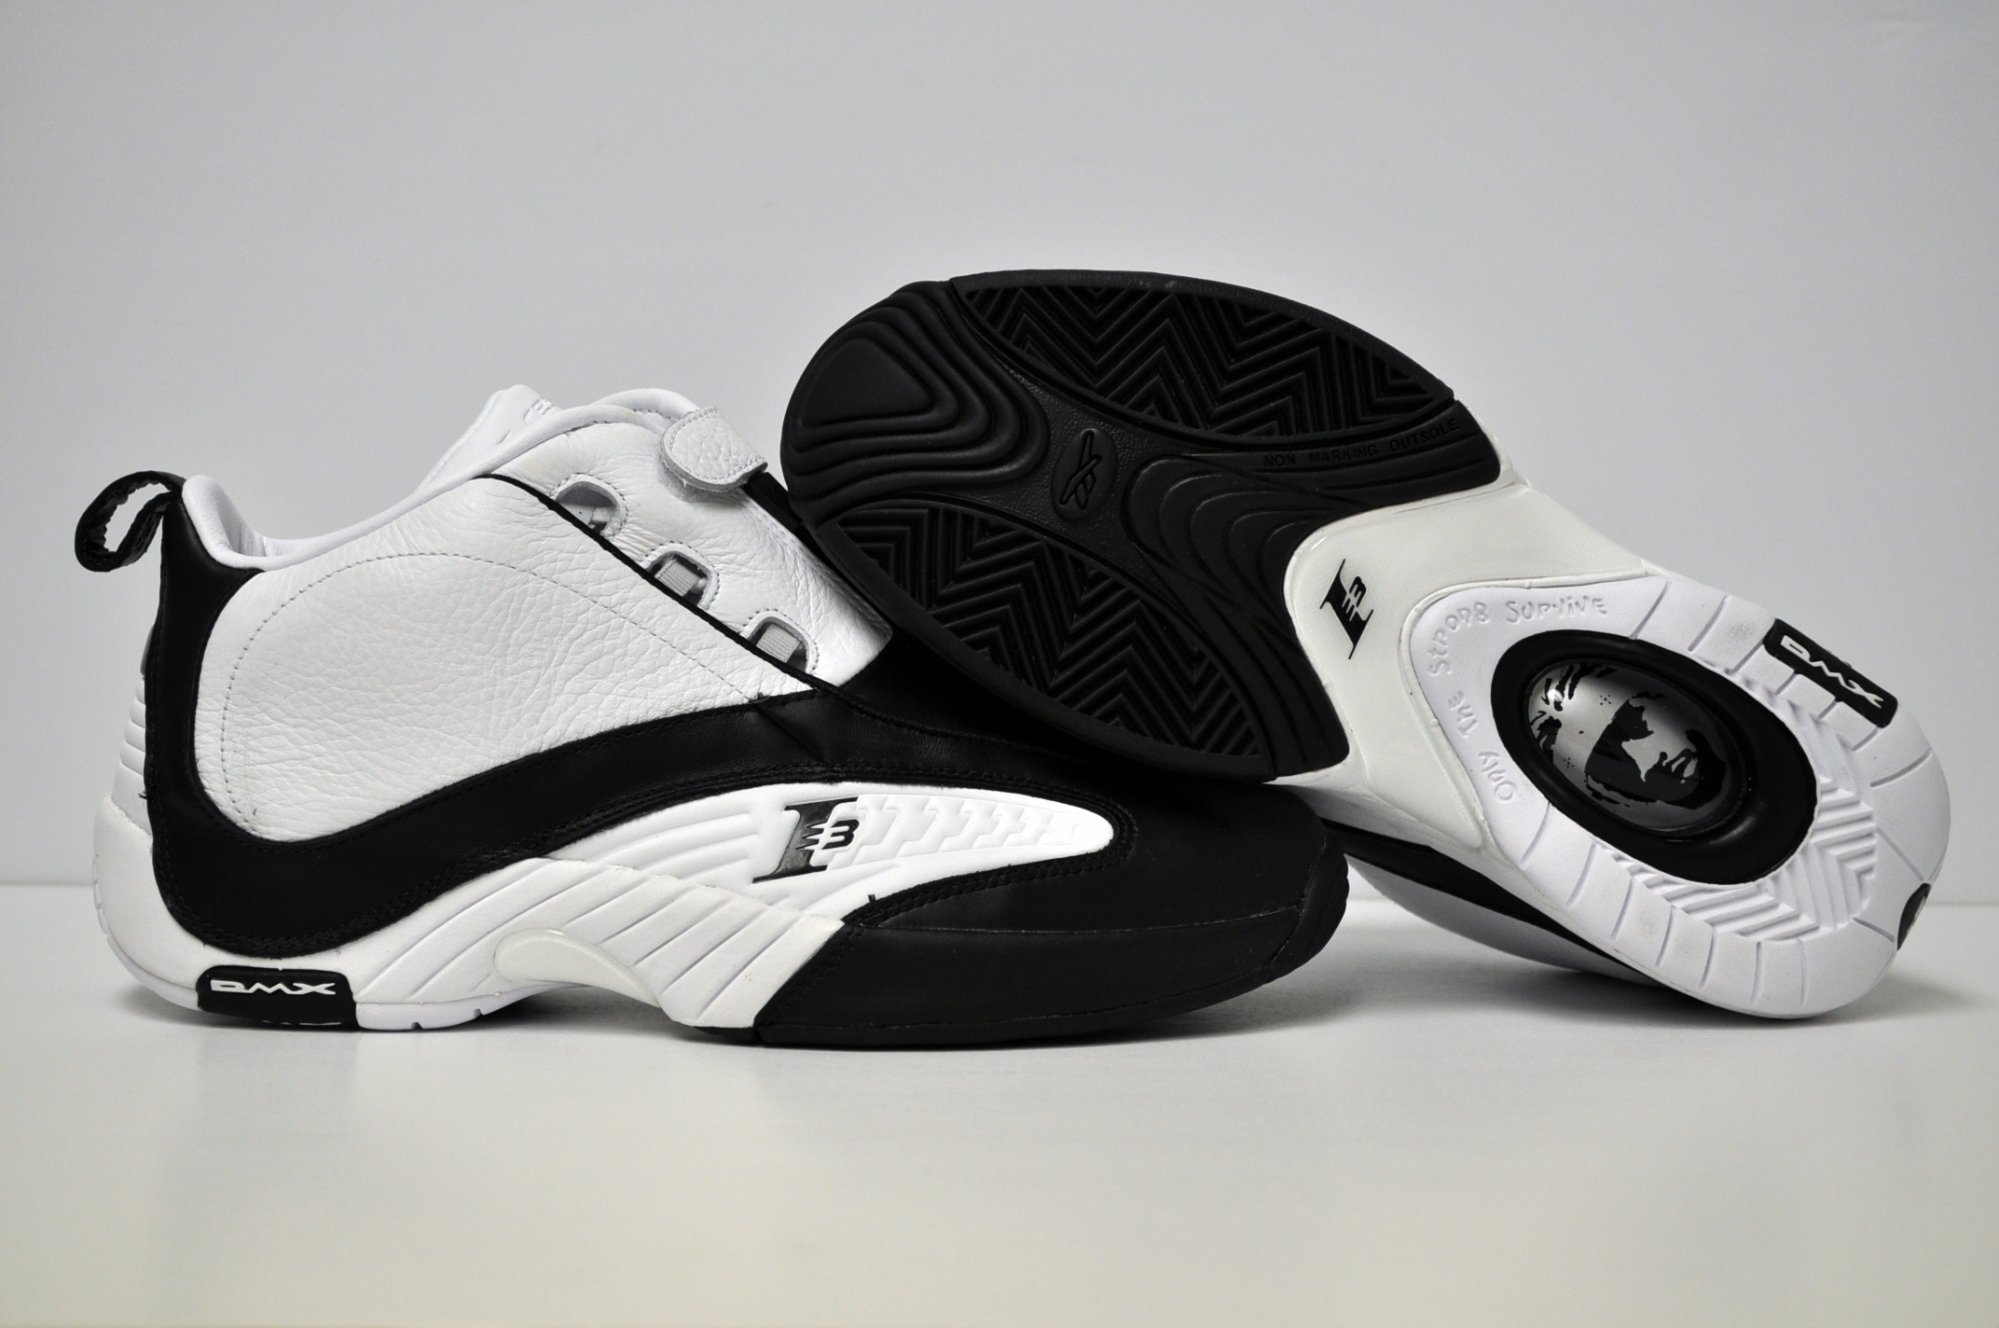 Reebok Answer IV 'White/Black' at The Vault